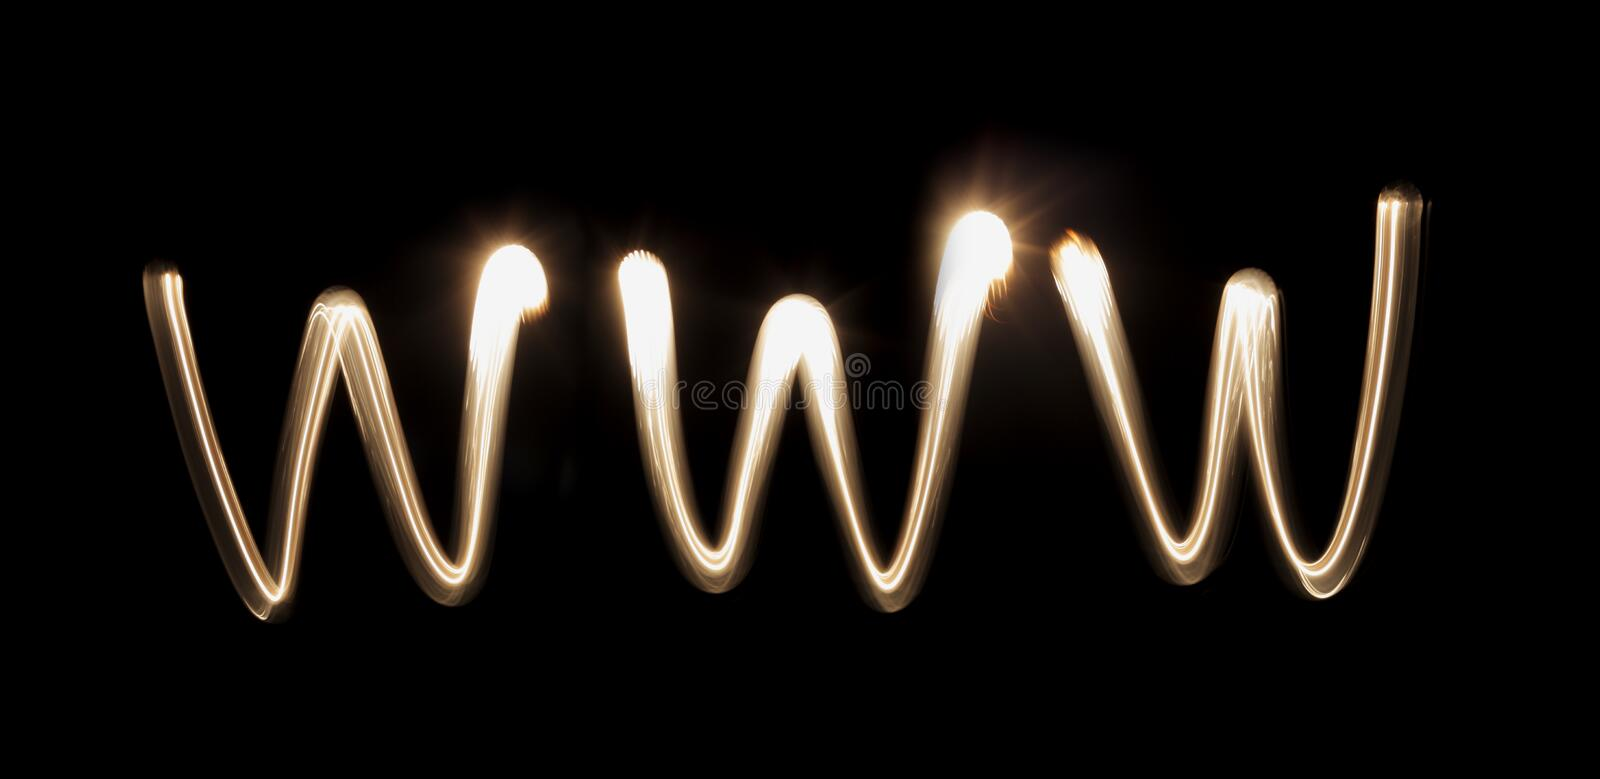 Download WWW stock photo. Image of glowing, streak, letters, abbreviation - 16403026